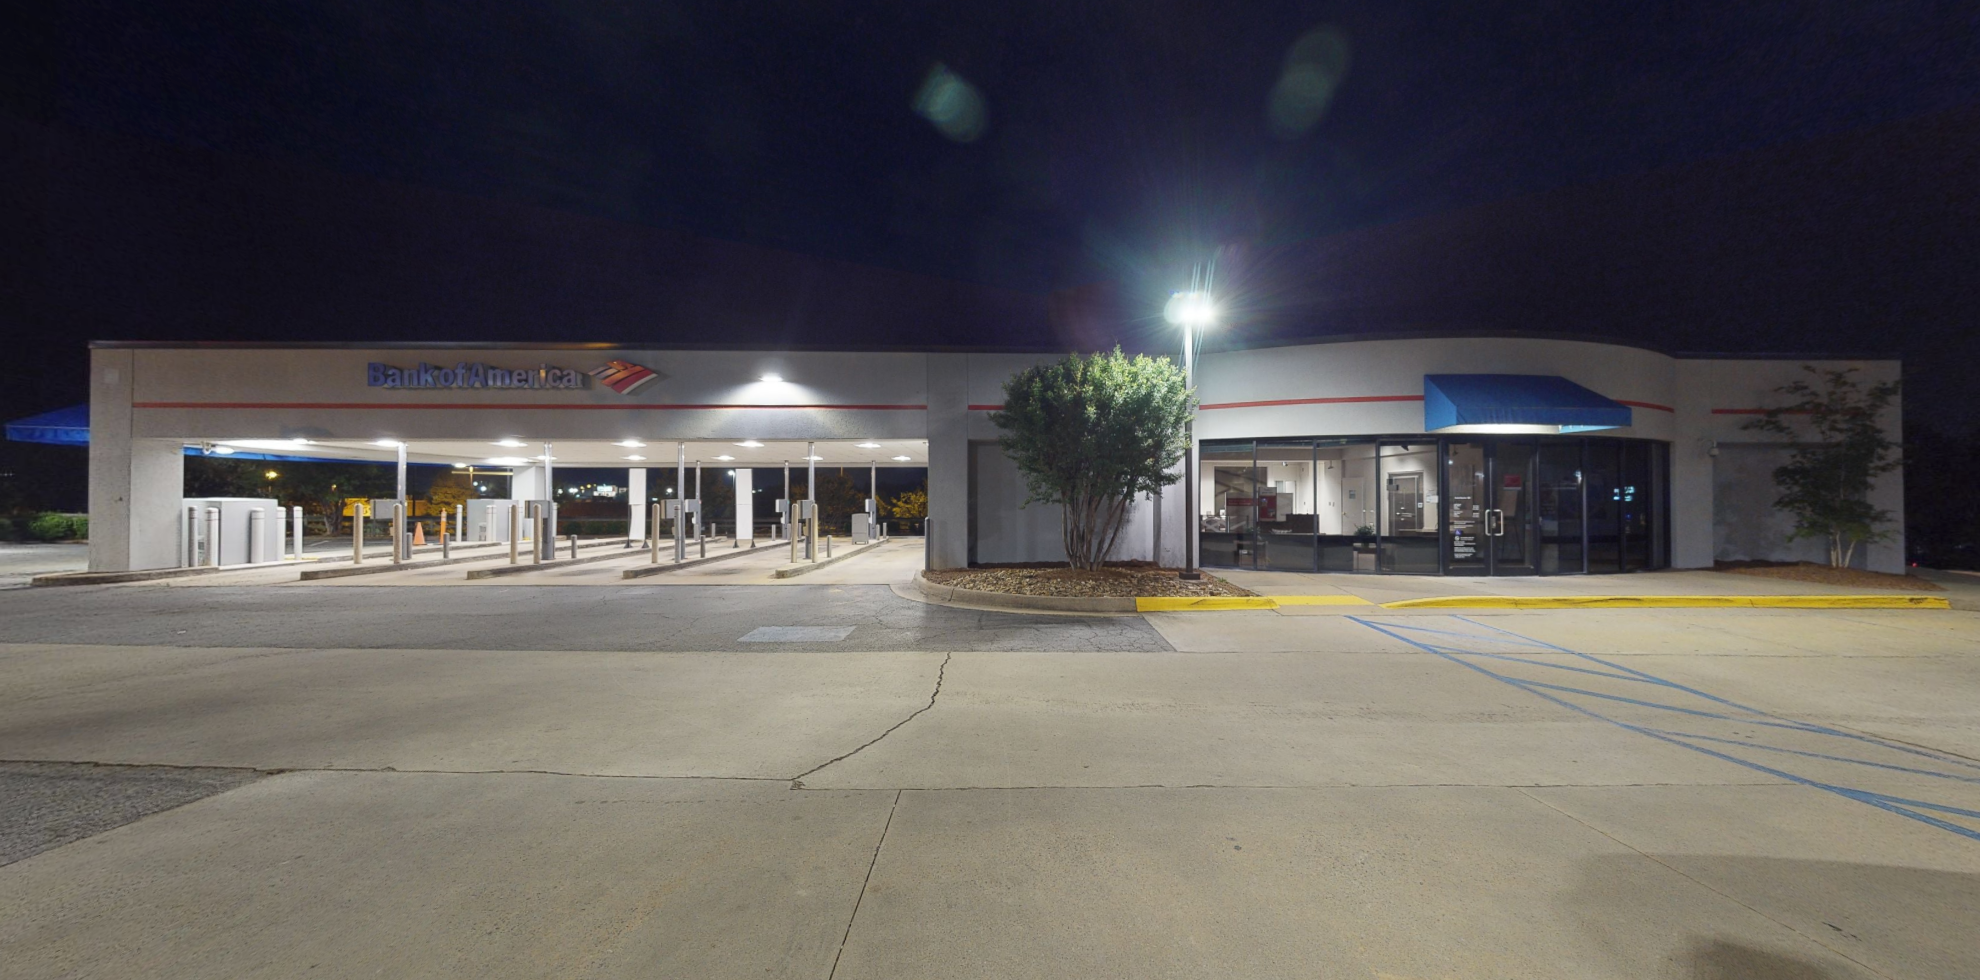 Bank of America financial center with drive-thru ATM and teller | 300 S Bowman Rd, Little Rock, AR 72211